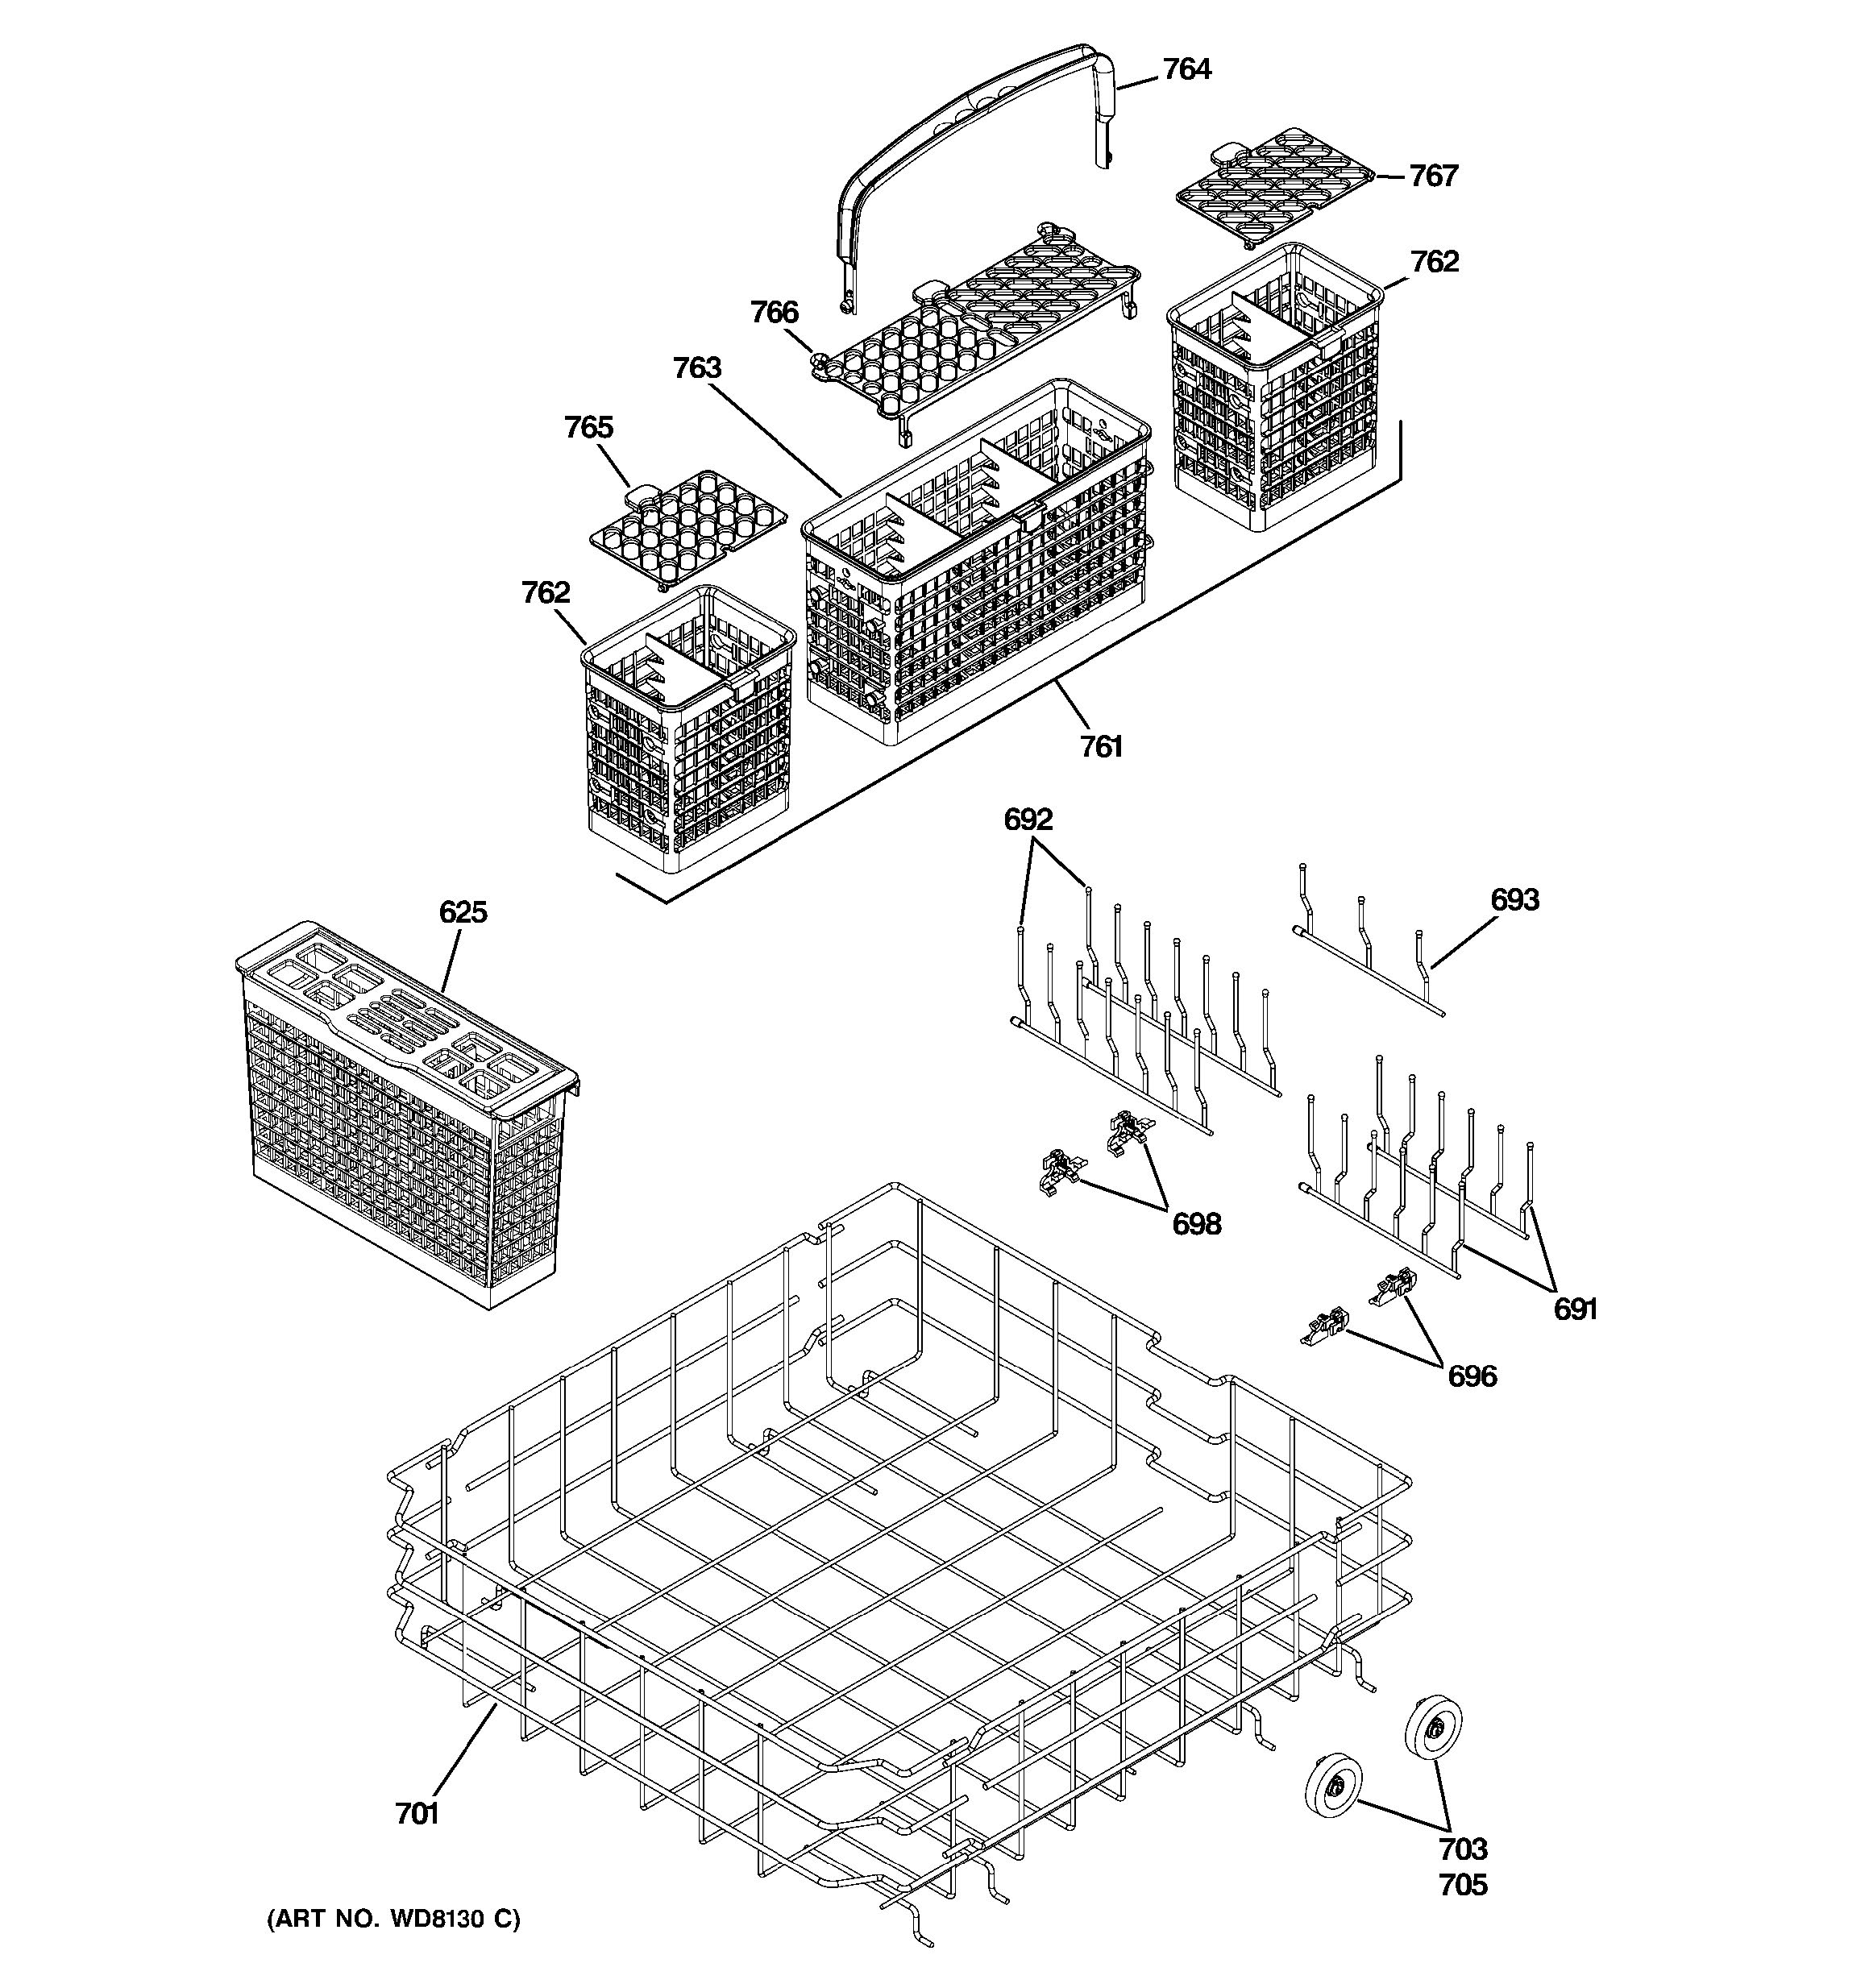 ge dishwasher parts diagram c3 wiring assembly view for lower rack pdw9880j00ss